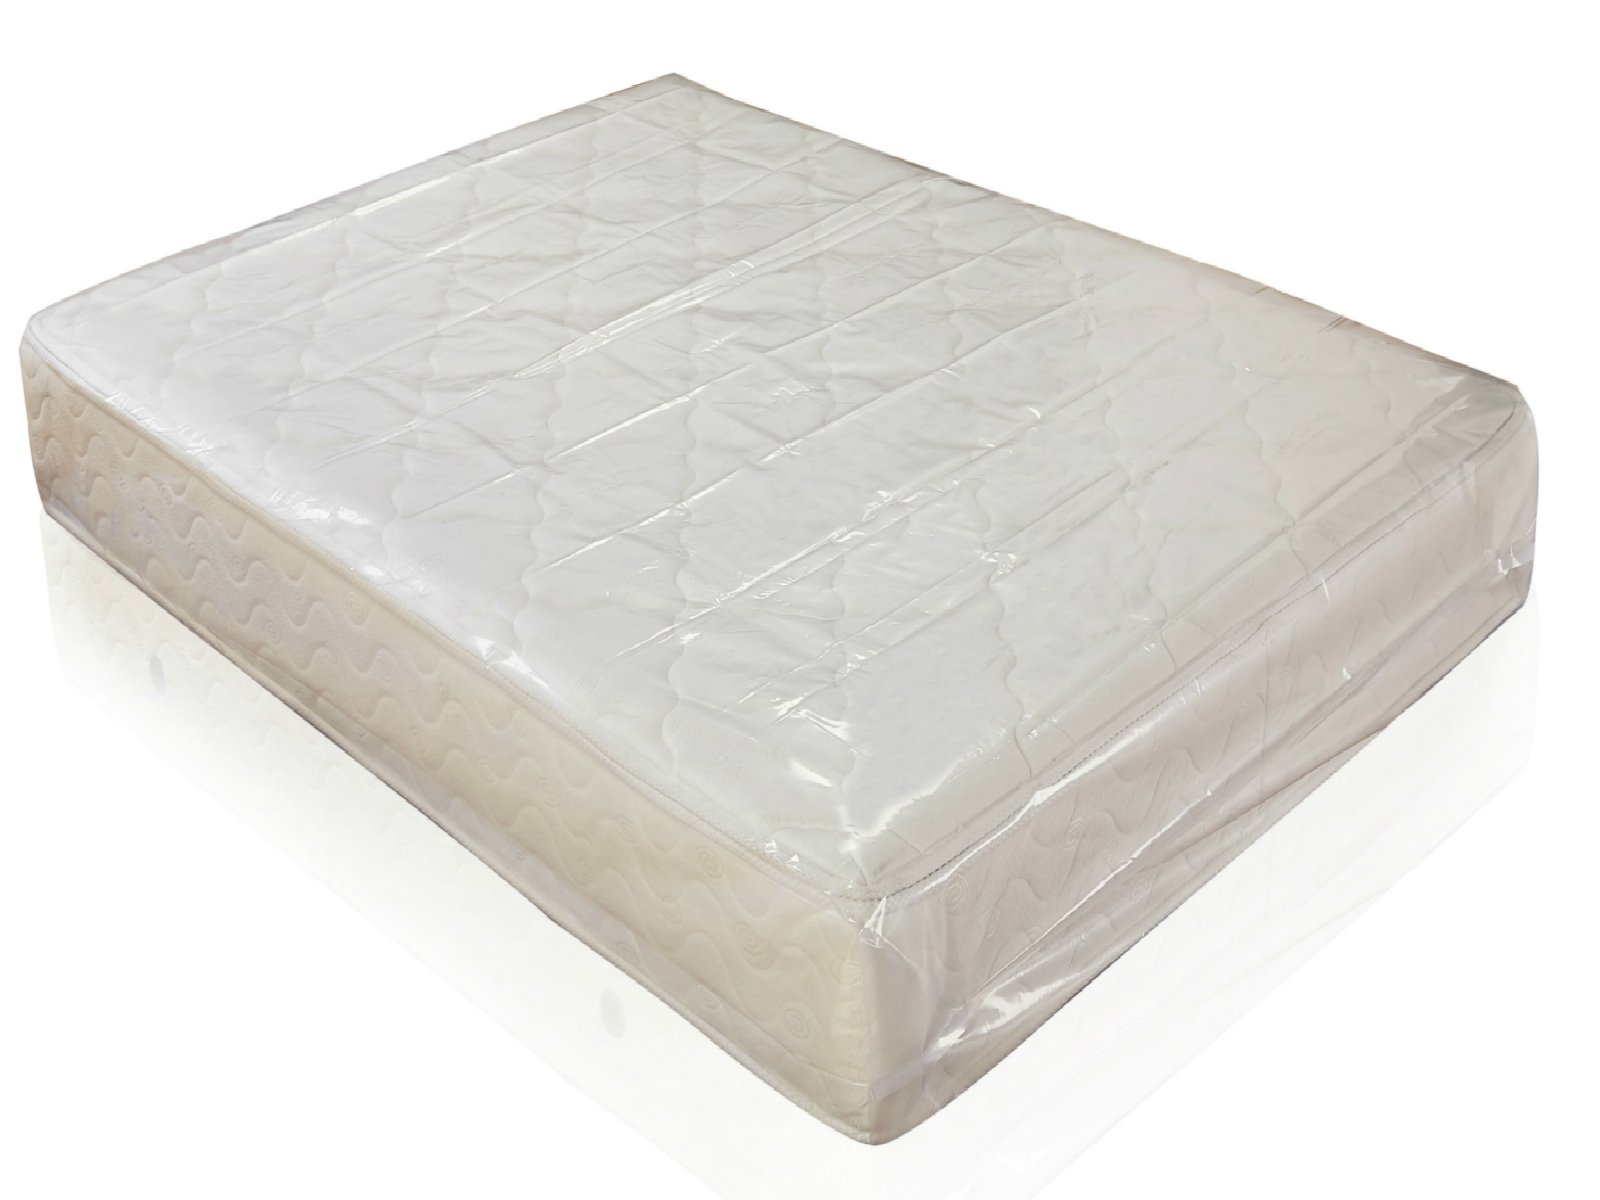 EWEI'S Homewares Mattress Bag for QUEEN Size 4 mil Thick, Heavy Duty Mattress Cover, Fits Standard, Extra-Long, Pillow-top variation, for Storage / Moving